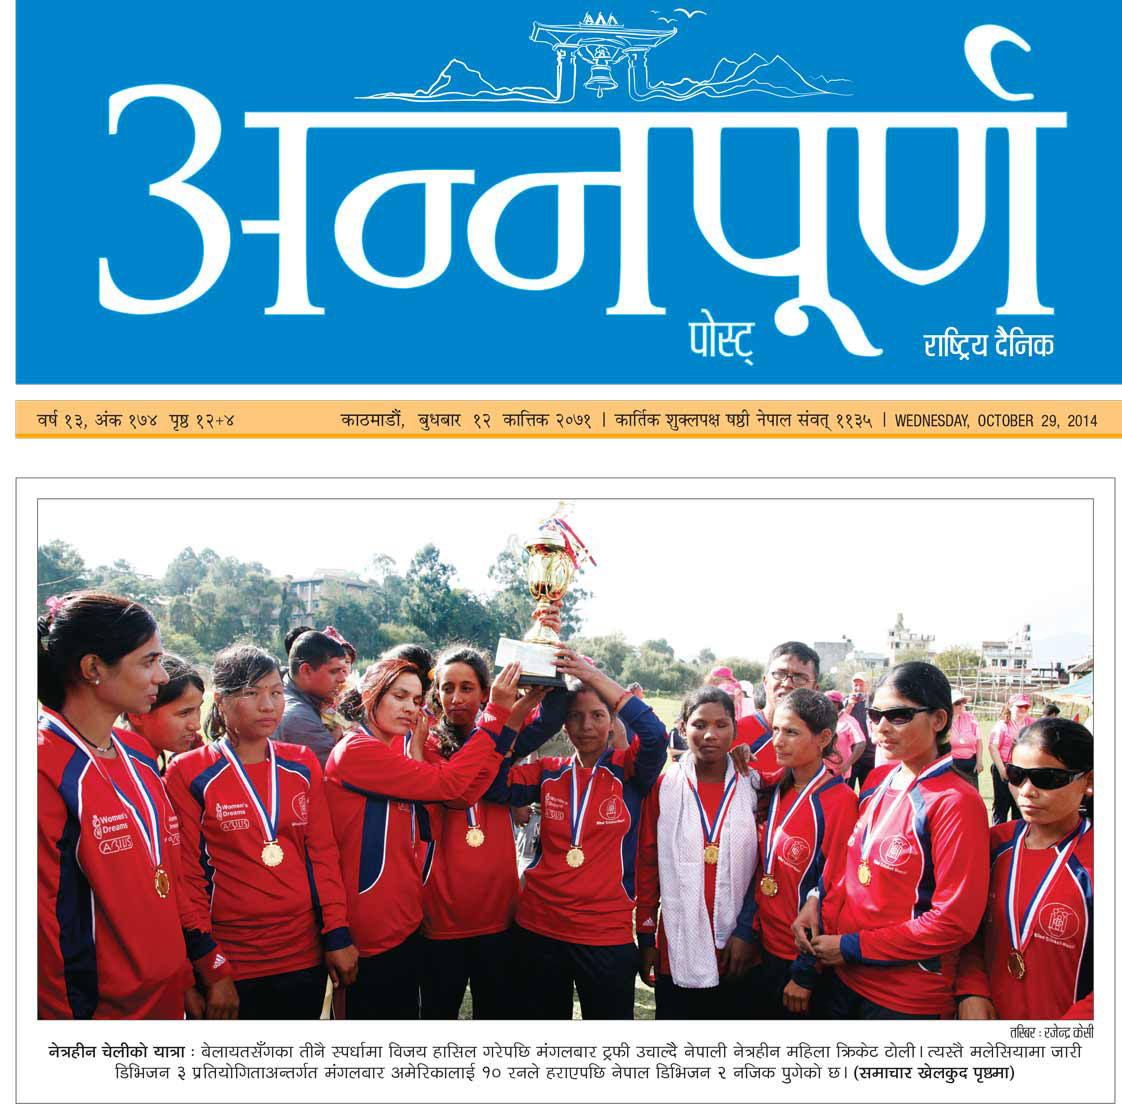 Nepal Blind Women Criket Team holding their Trophy after victory in the T20 Series against UK Blind Women Team. The photo was published on the cover page of Annapurna Post, a leading nepali daily.